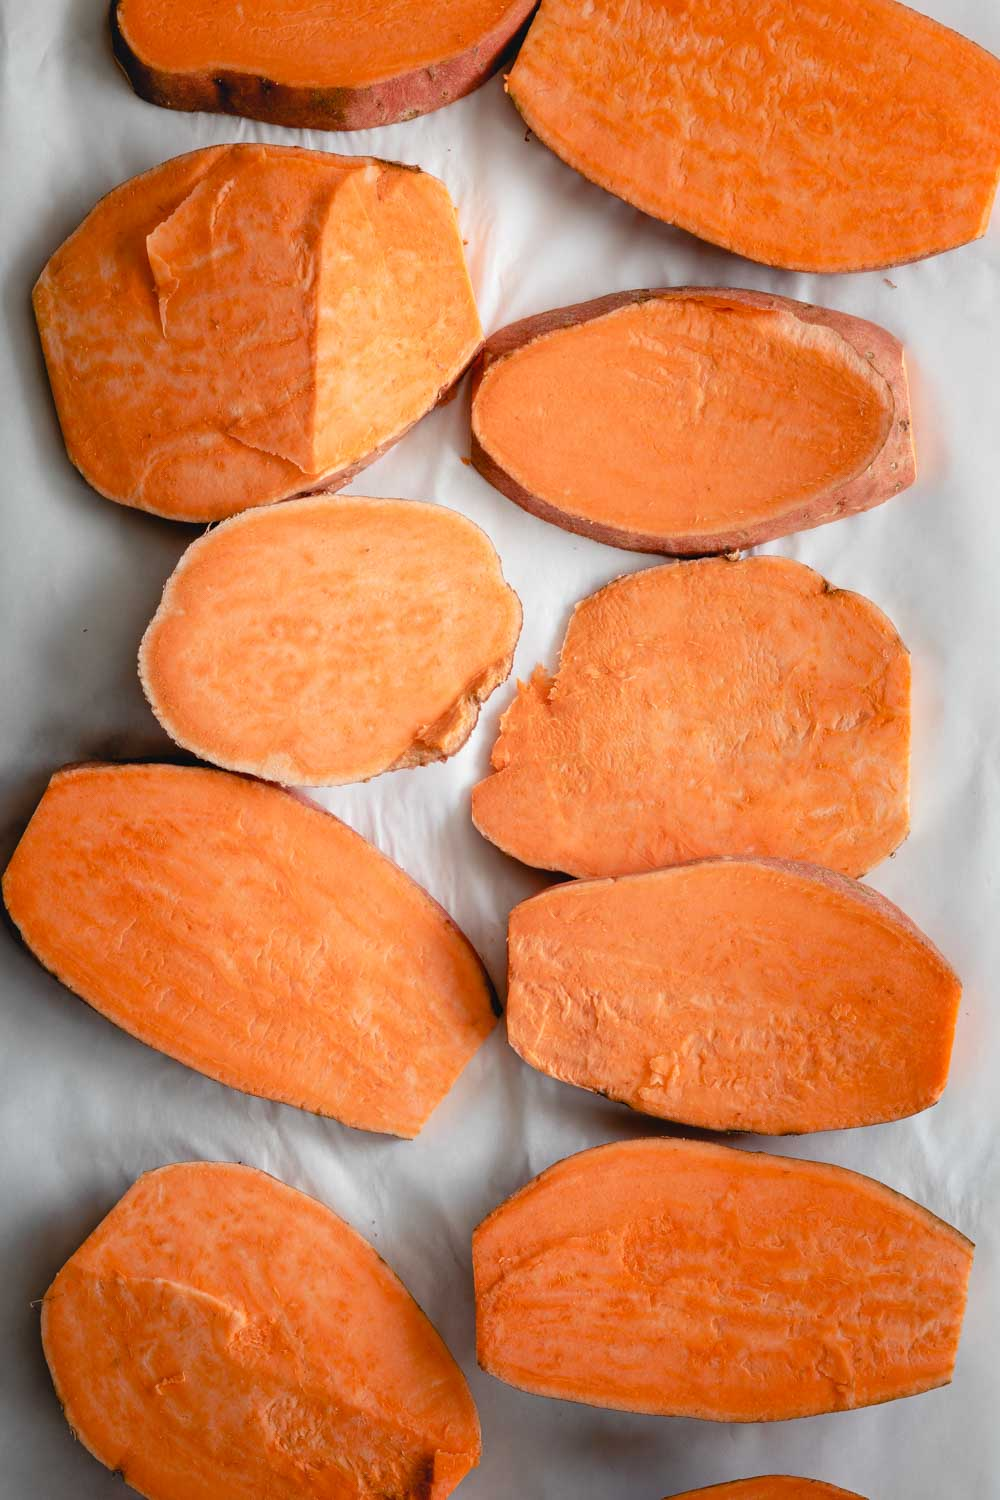 sliced raw sweet potato slices on a white paper